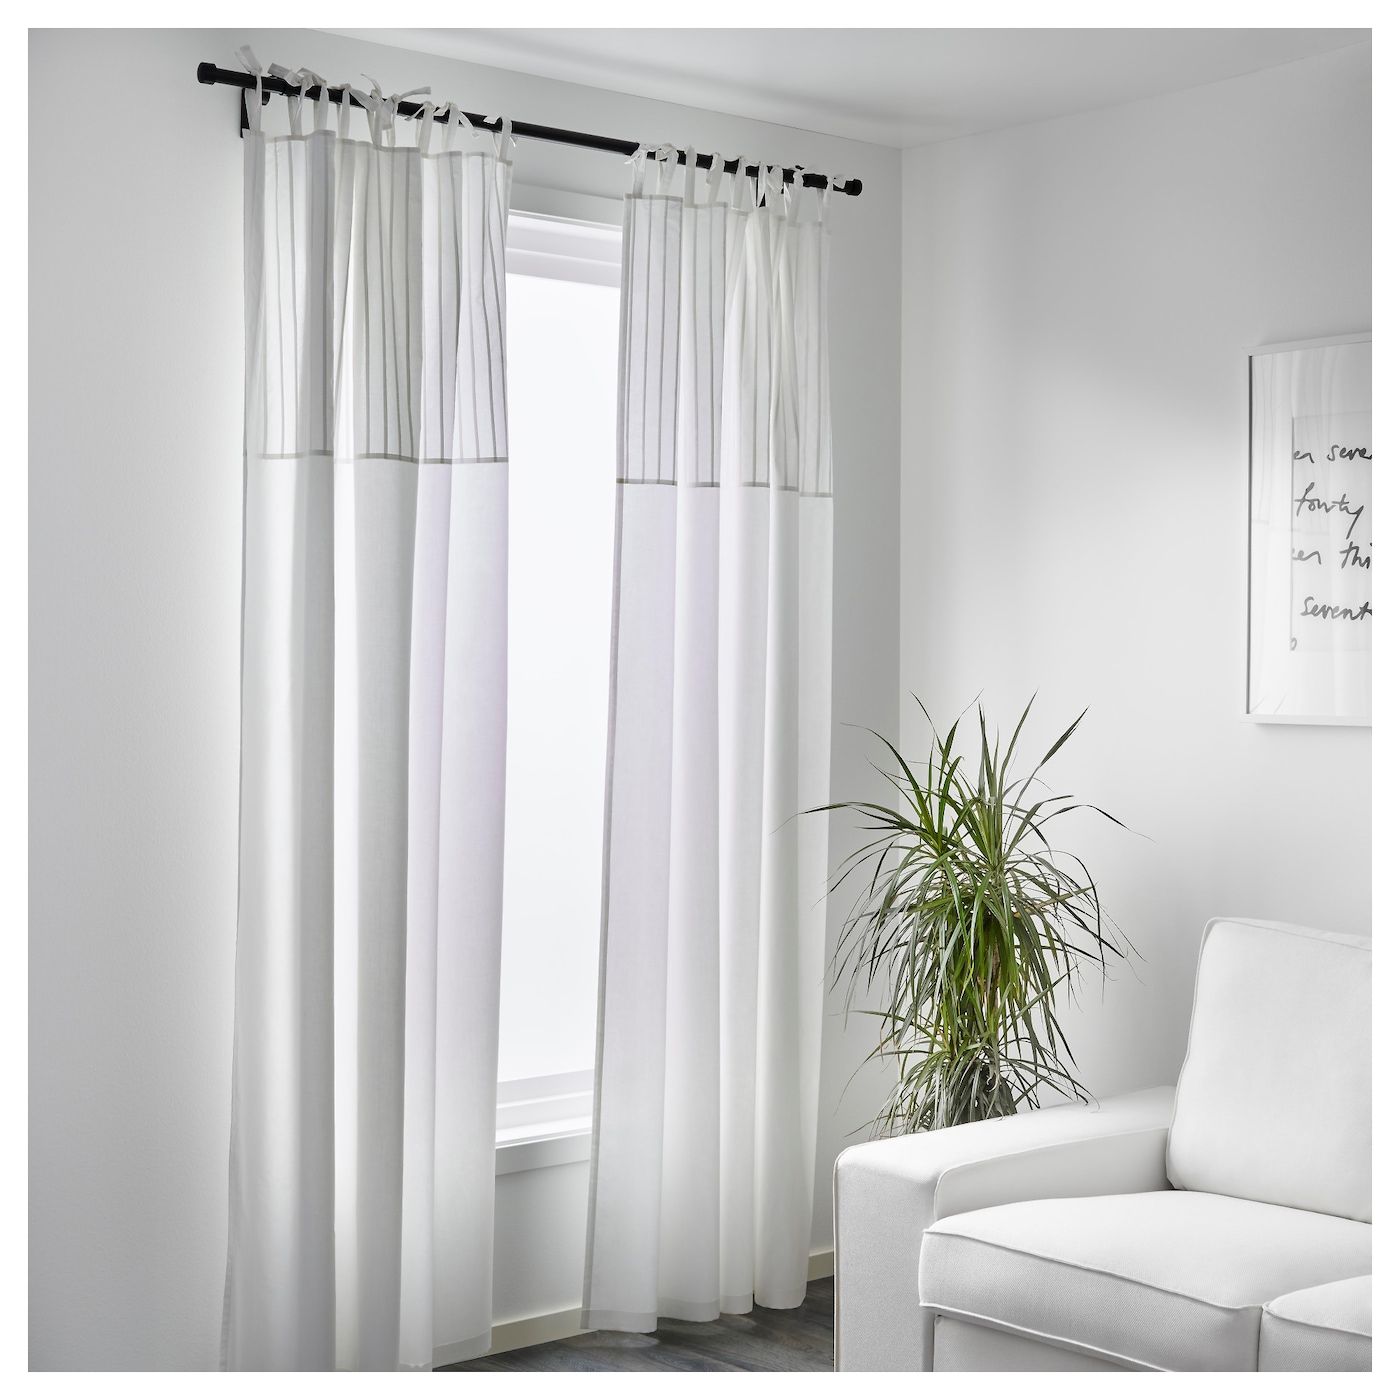 P rlblad curtains 1 pair white 145x250 cm ikea - Cortinas de ninos ikea ...